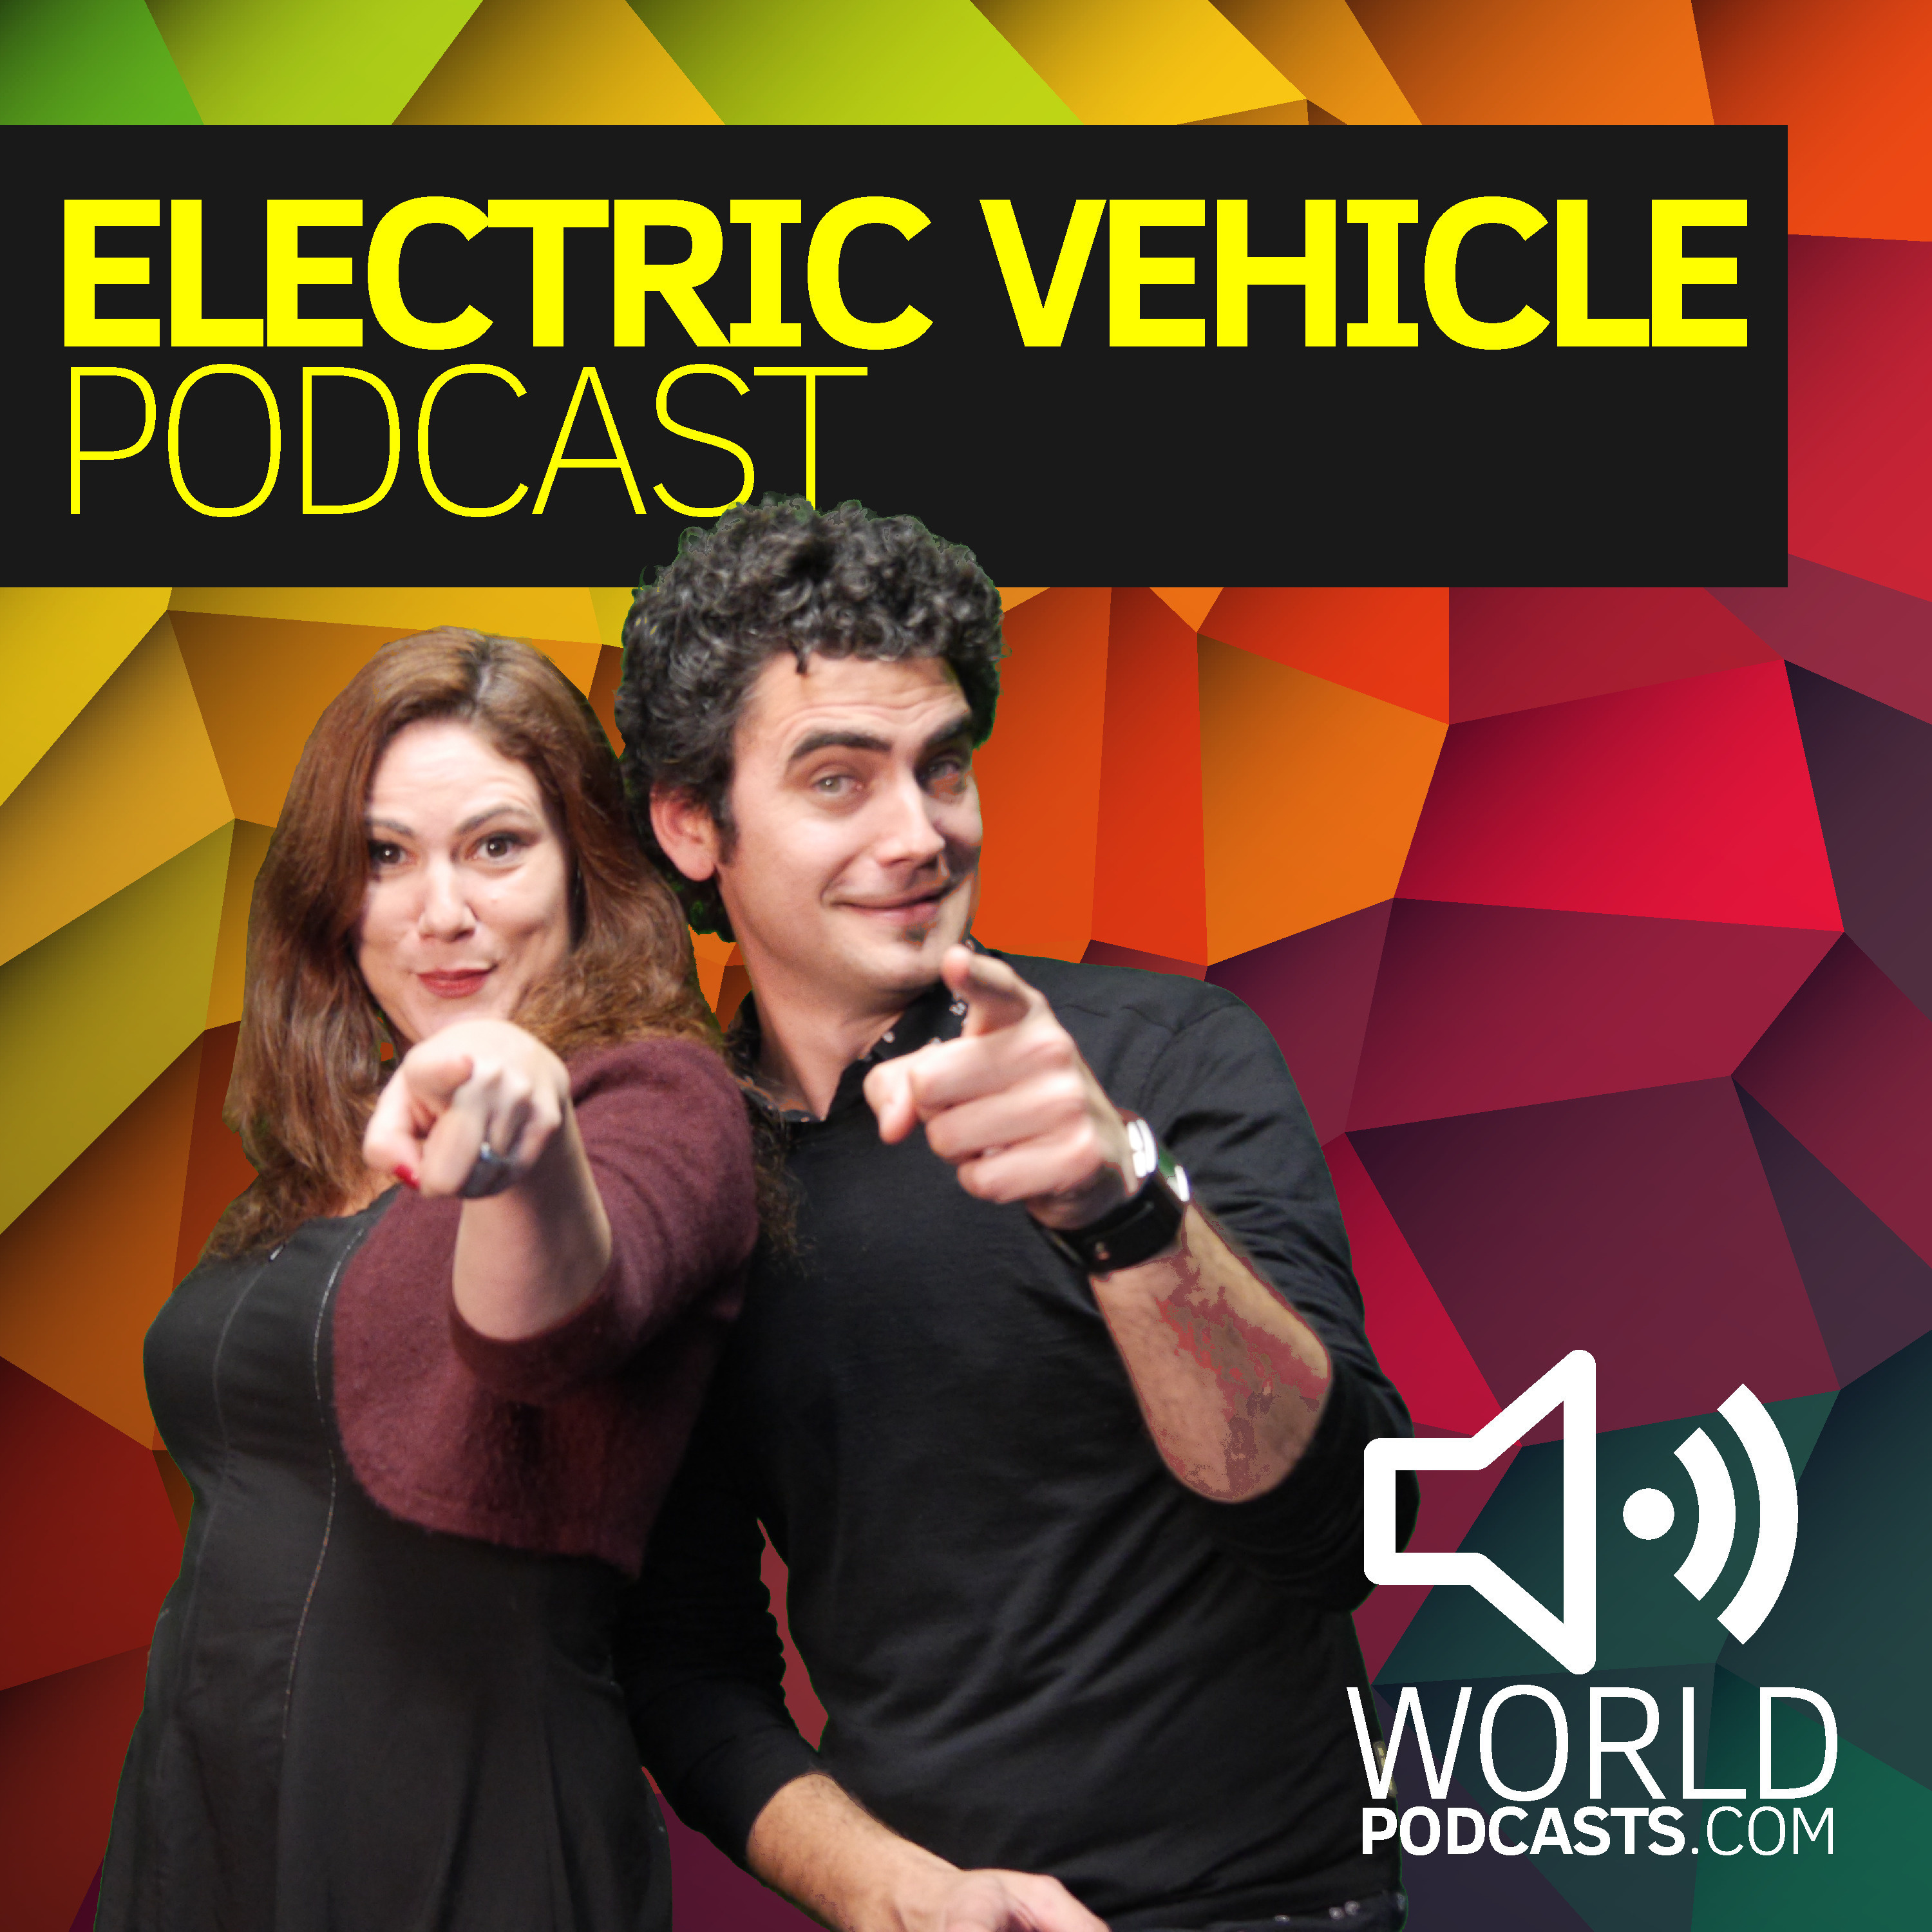 EV Podcast: NZ Clean Standard & Discount